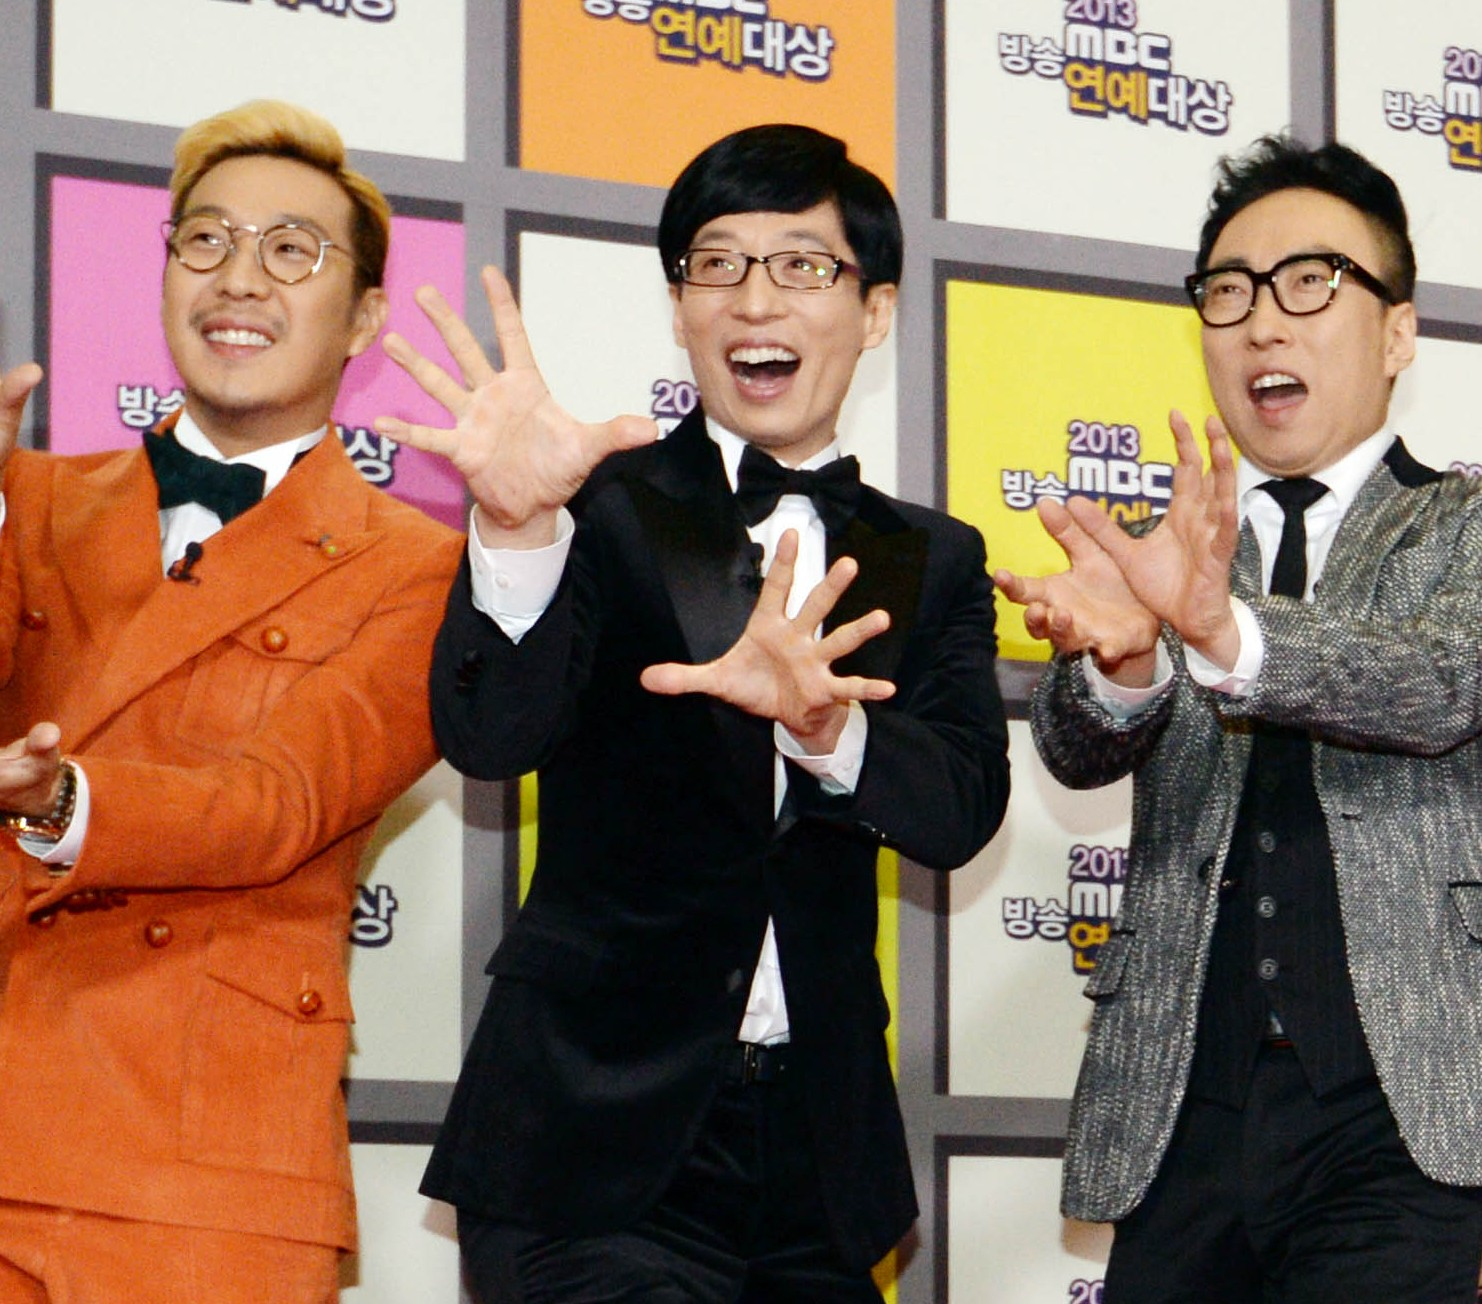 Cast of Infinite Challenge (from left) - Gil, Ha Ha, Yoo Jae-suk, Park Myeong-soo, Noh Hong-chul, Jeong Jun-ha, Jeonng Hyung-don. (Newsis)